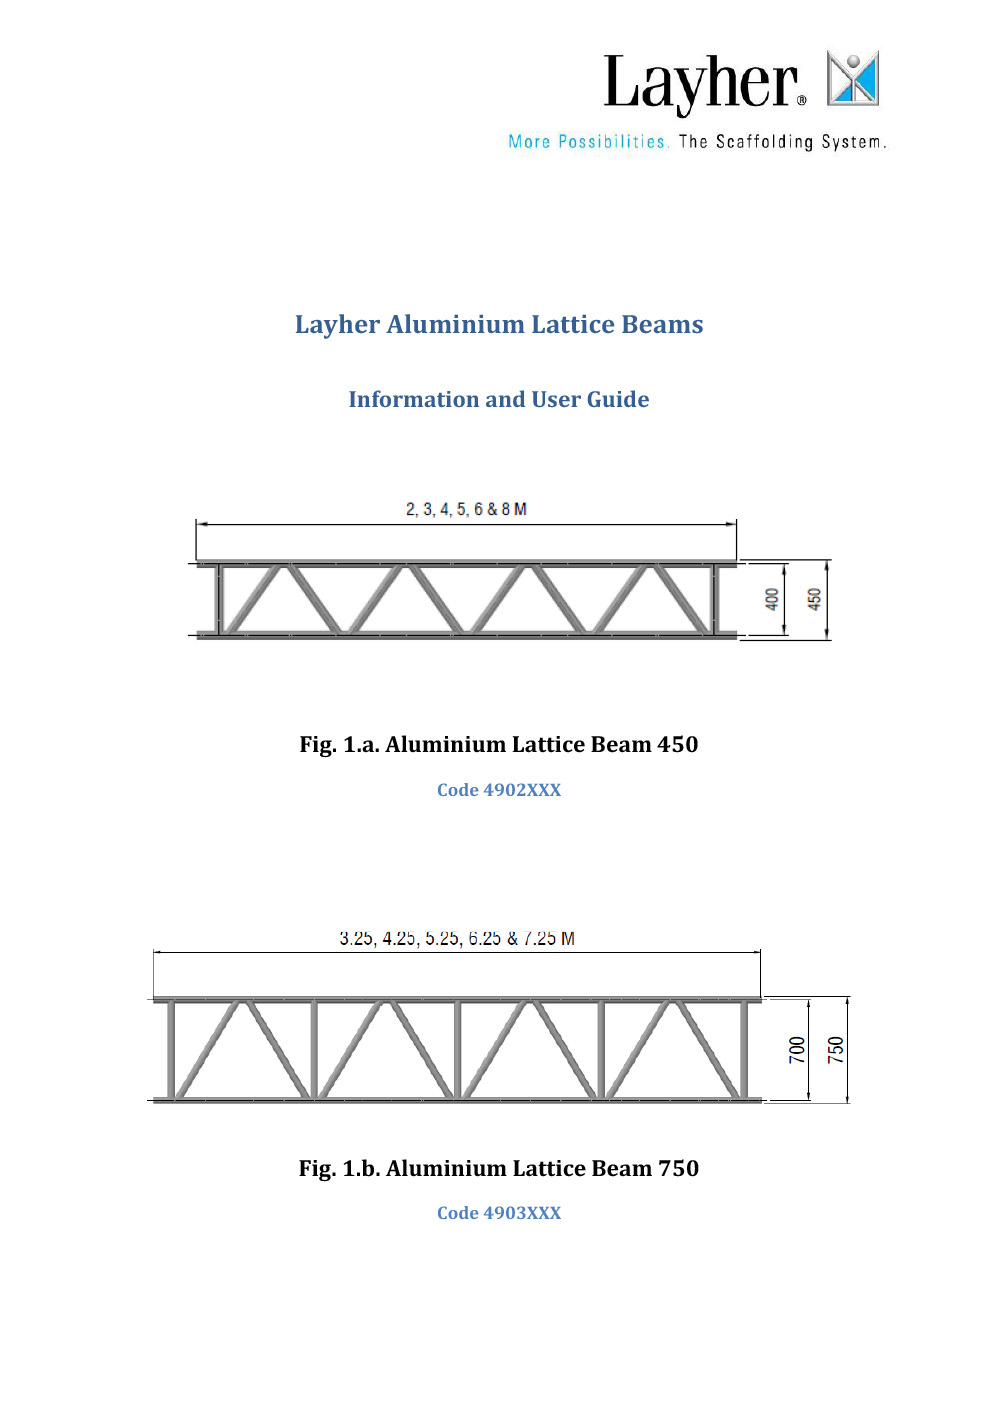 Layher Aluminium Beams Technical Information and User Guide